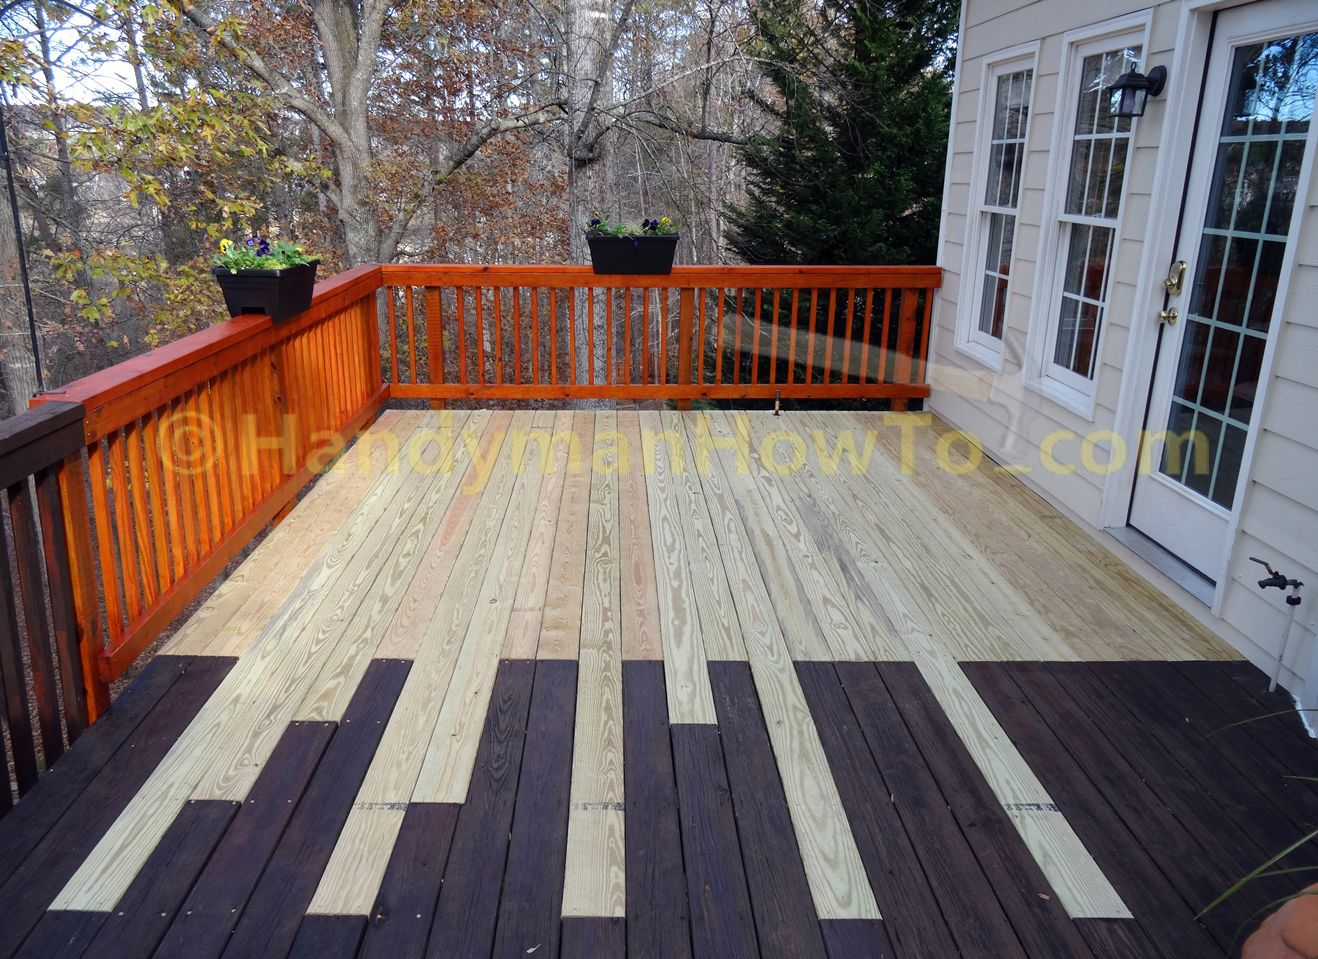 How To Replace Wood Deck Boards Deck Remodel Deck Boards Building A Deck